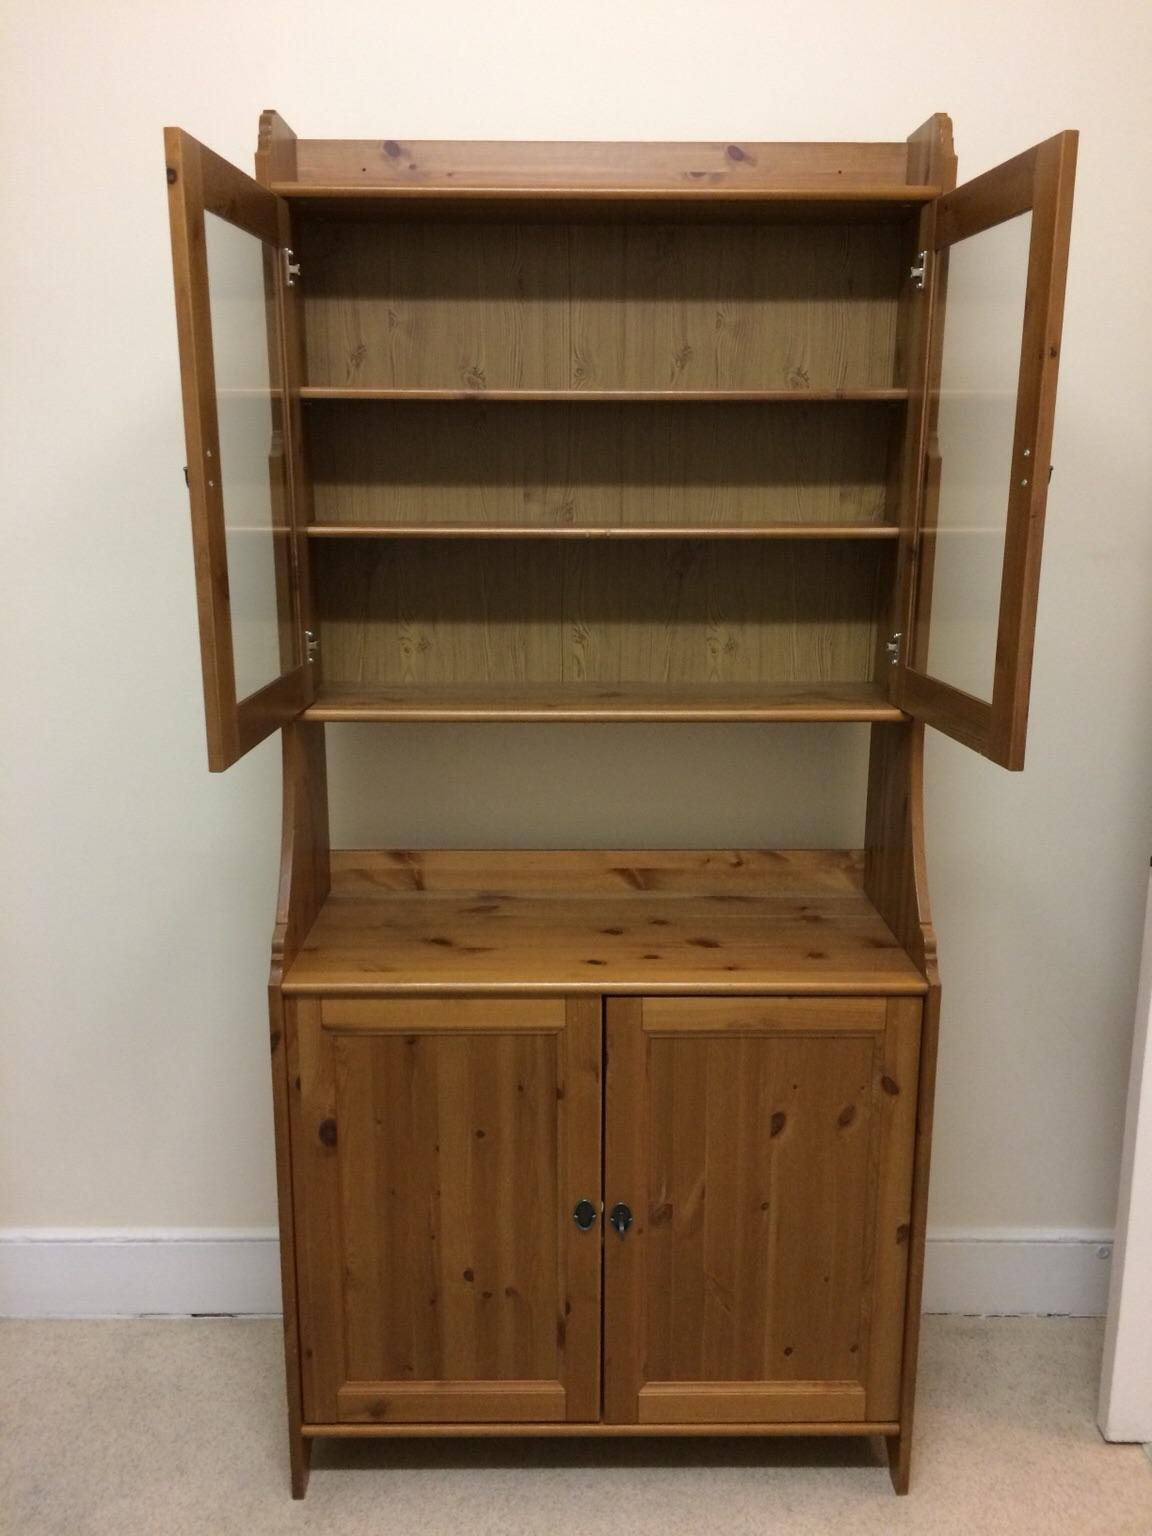 Ikea Leksvik Display Cabinet In N5 Islington For 163 45 00